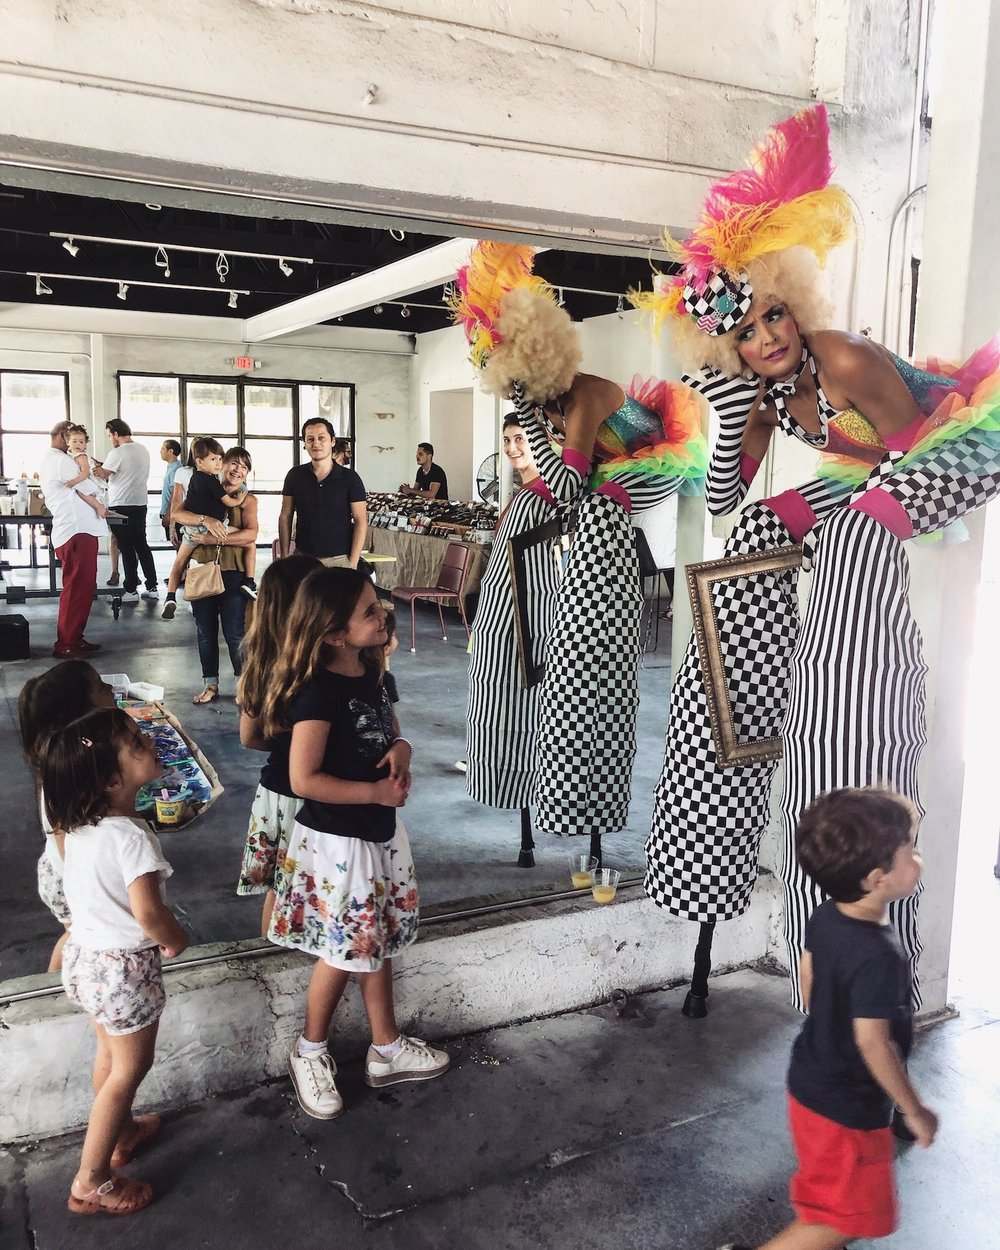 """Featured talent - Fifi The Clown""""Fifi the Clown loves to entertain adults and especially Kids. Her antics leave everyone with a big smile on their face and warmness in their hearts.""""Soraya, stilt-walkerClick HERE to meet the artist📧To apply for #IronsideTalents please email: info@miamiironside.com"""